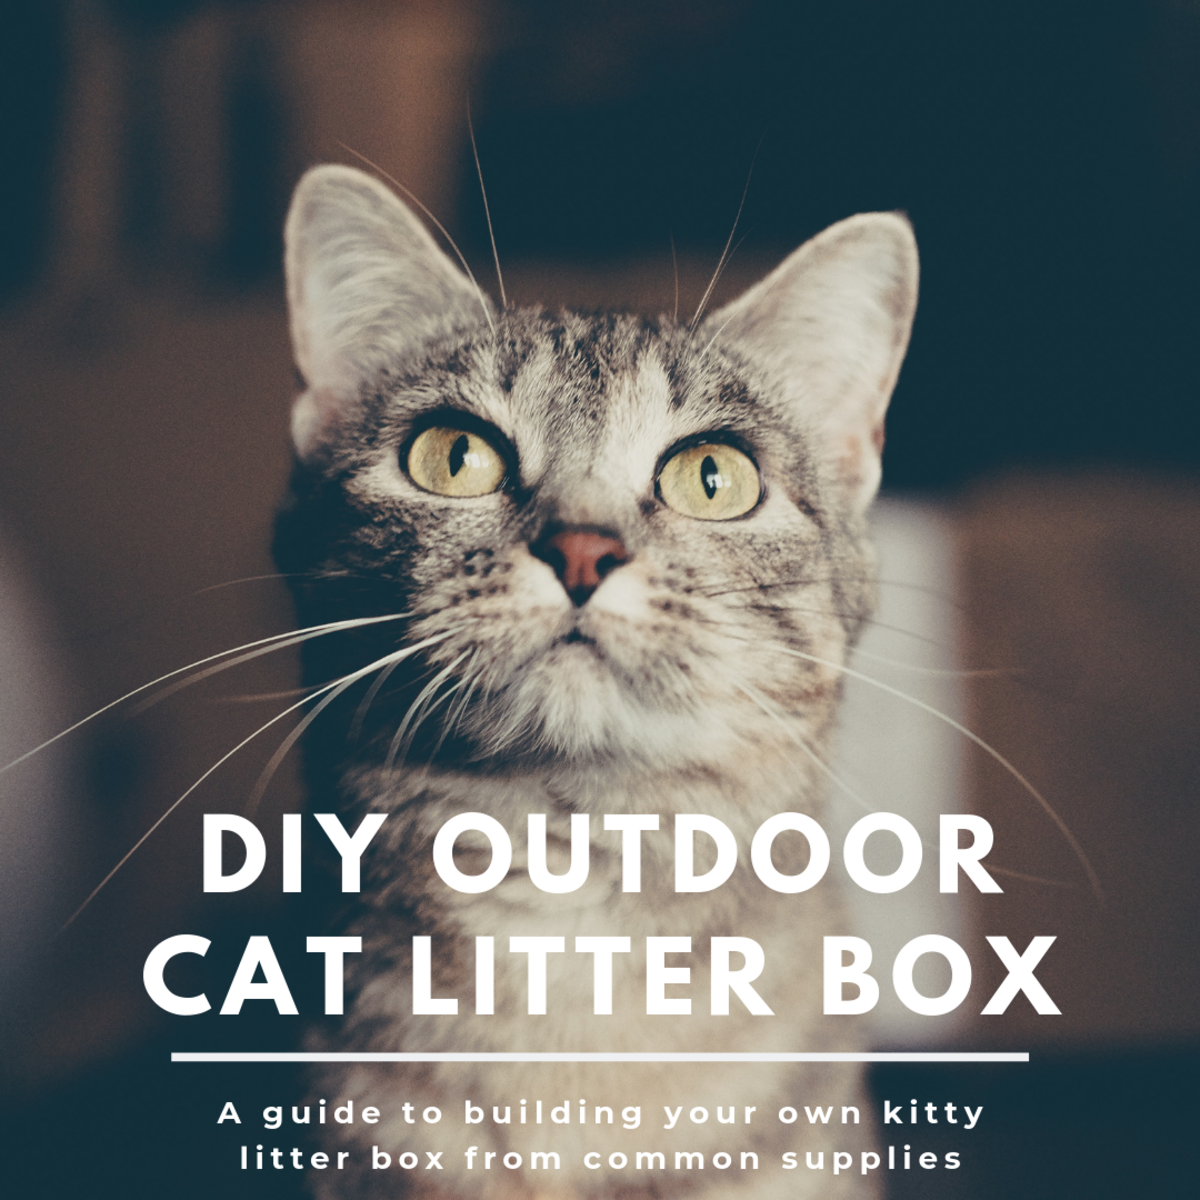 This guide will break down how to make your own outdoor cat litter box from some common building materials and some Oil-Dri.